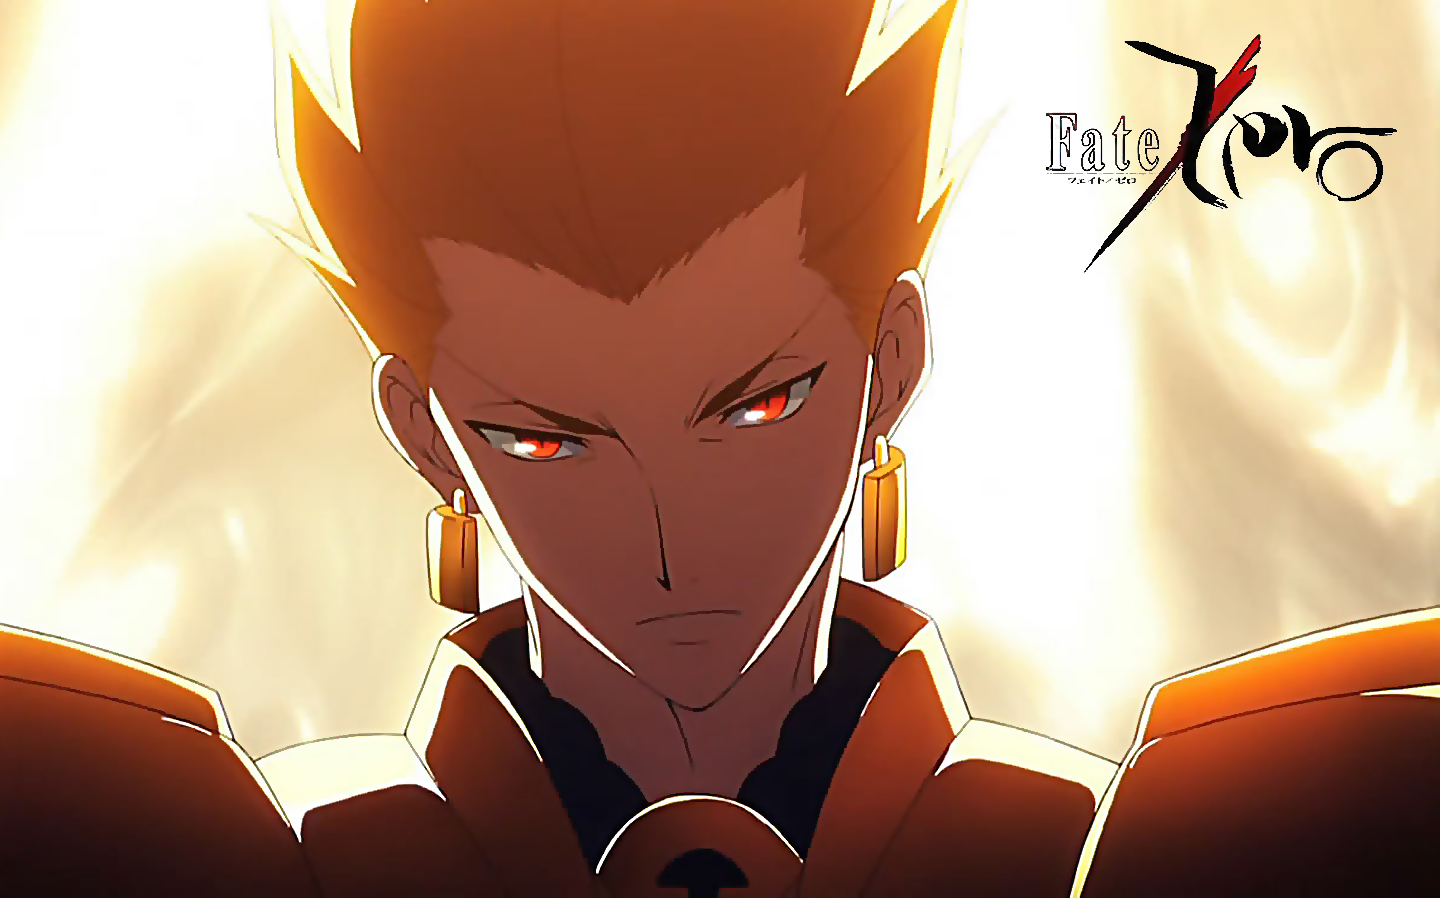 zerochan Fatestay night Gilgamesh 840469 1440x900